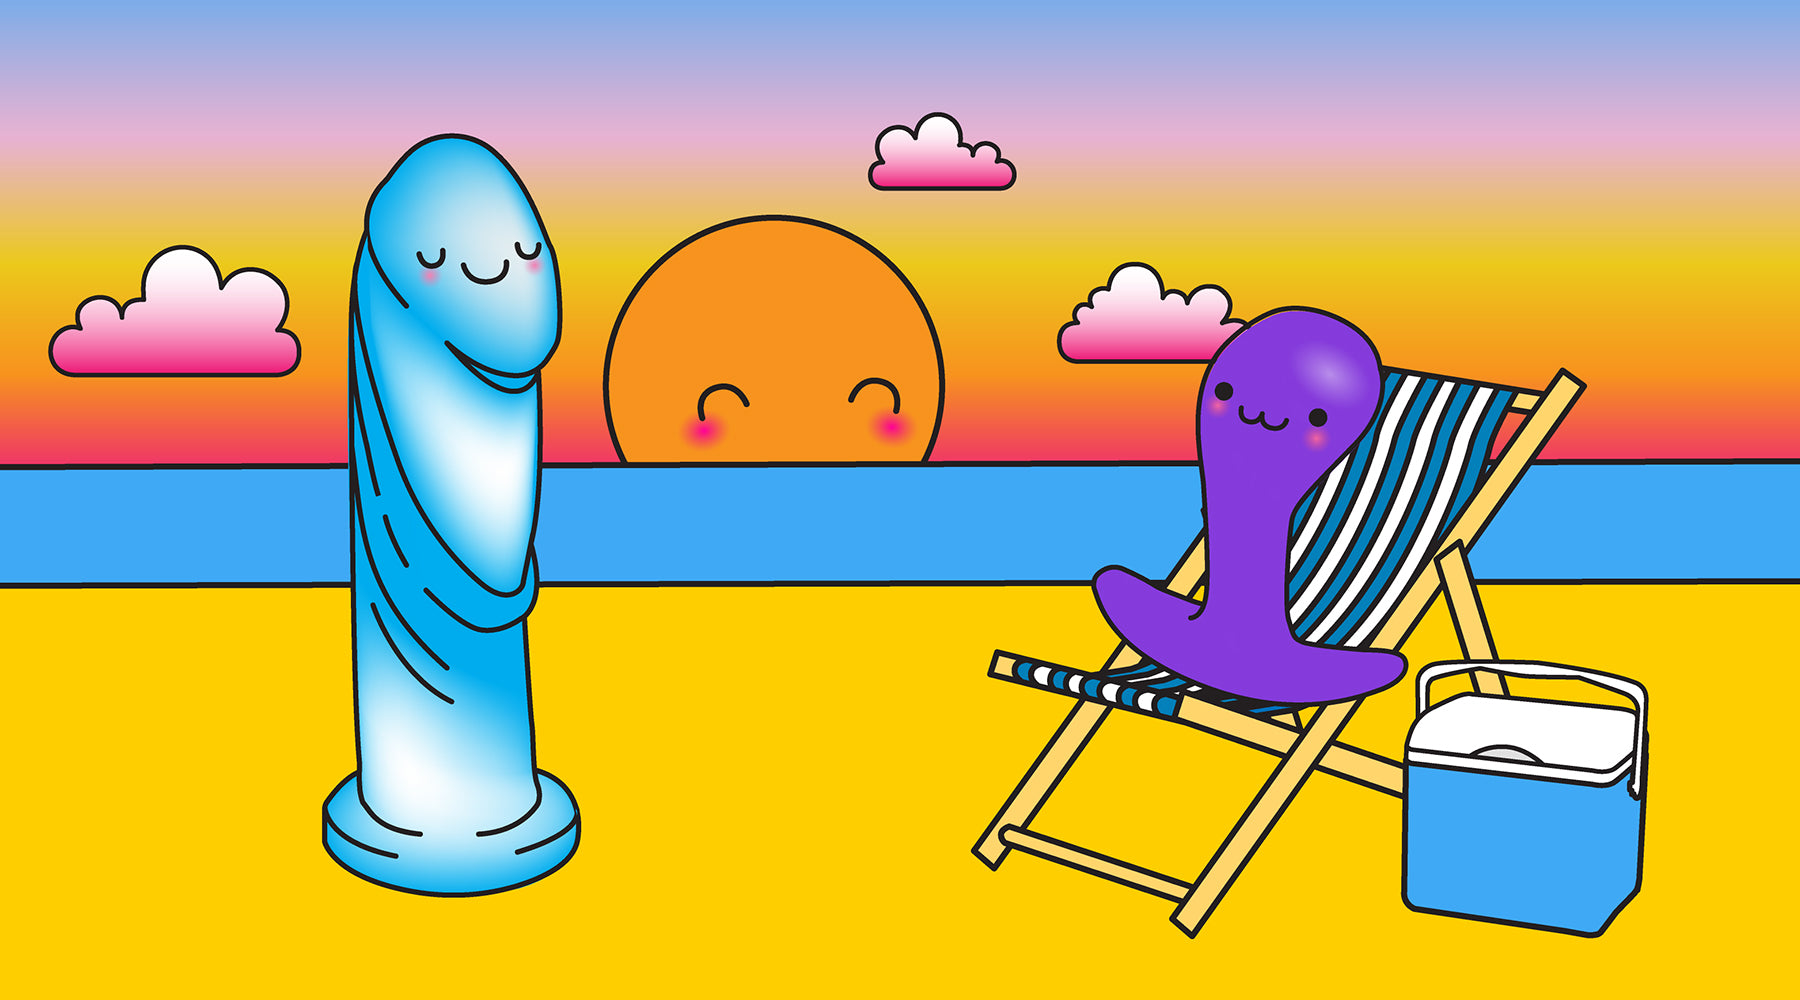 Summer Banner - Dildo and Plug Mascots at the beach at sunset | Nikki Darling Australia